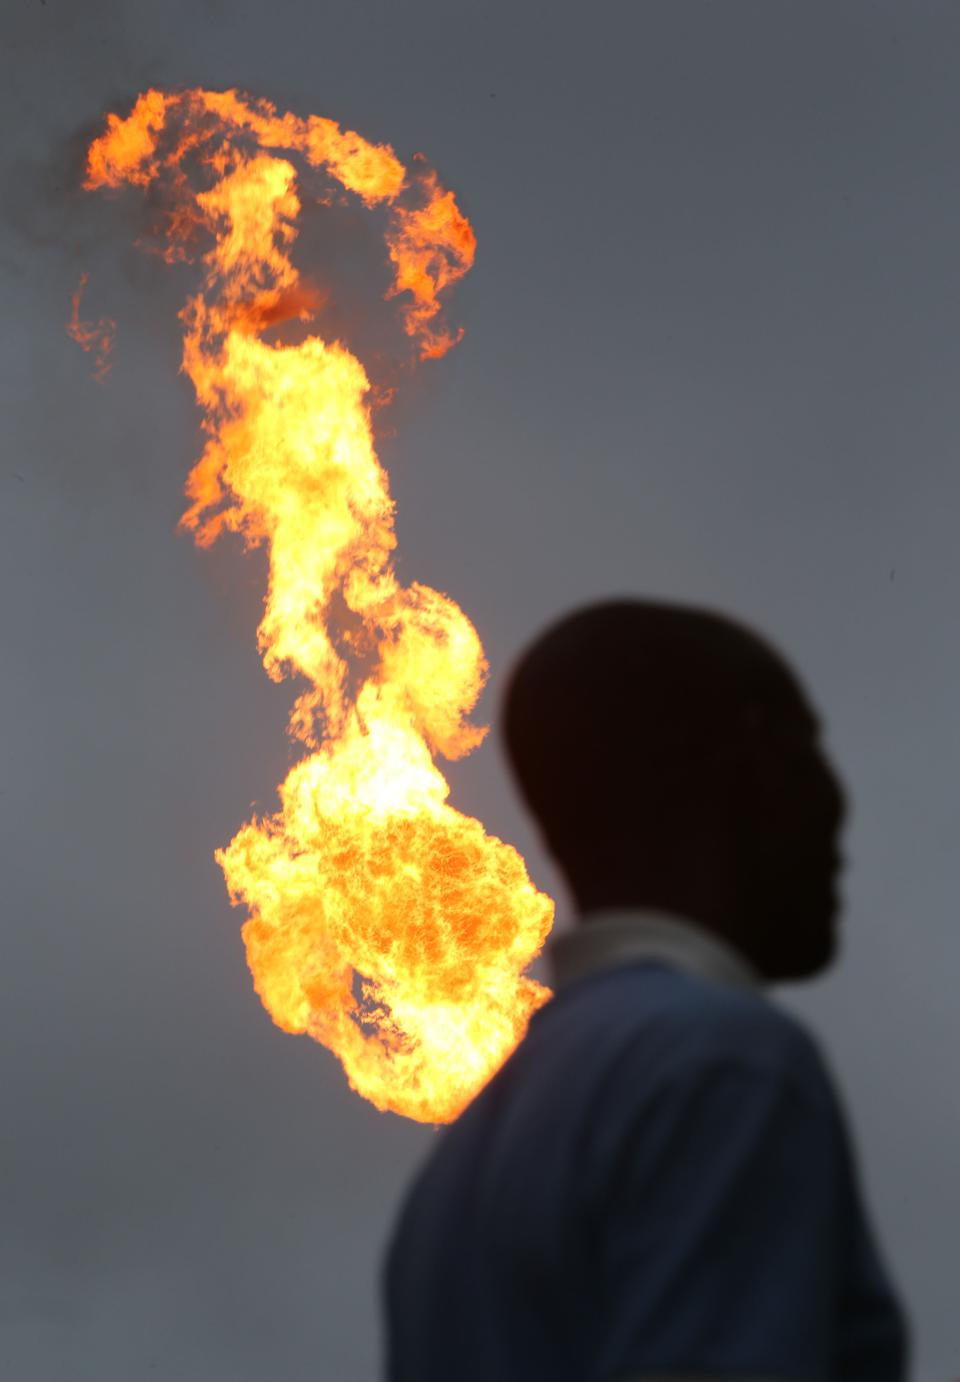 Nigeria's Energy Future Challenged By Weak Rule Of Law